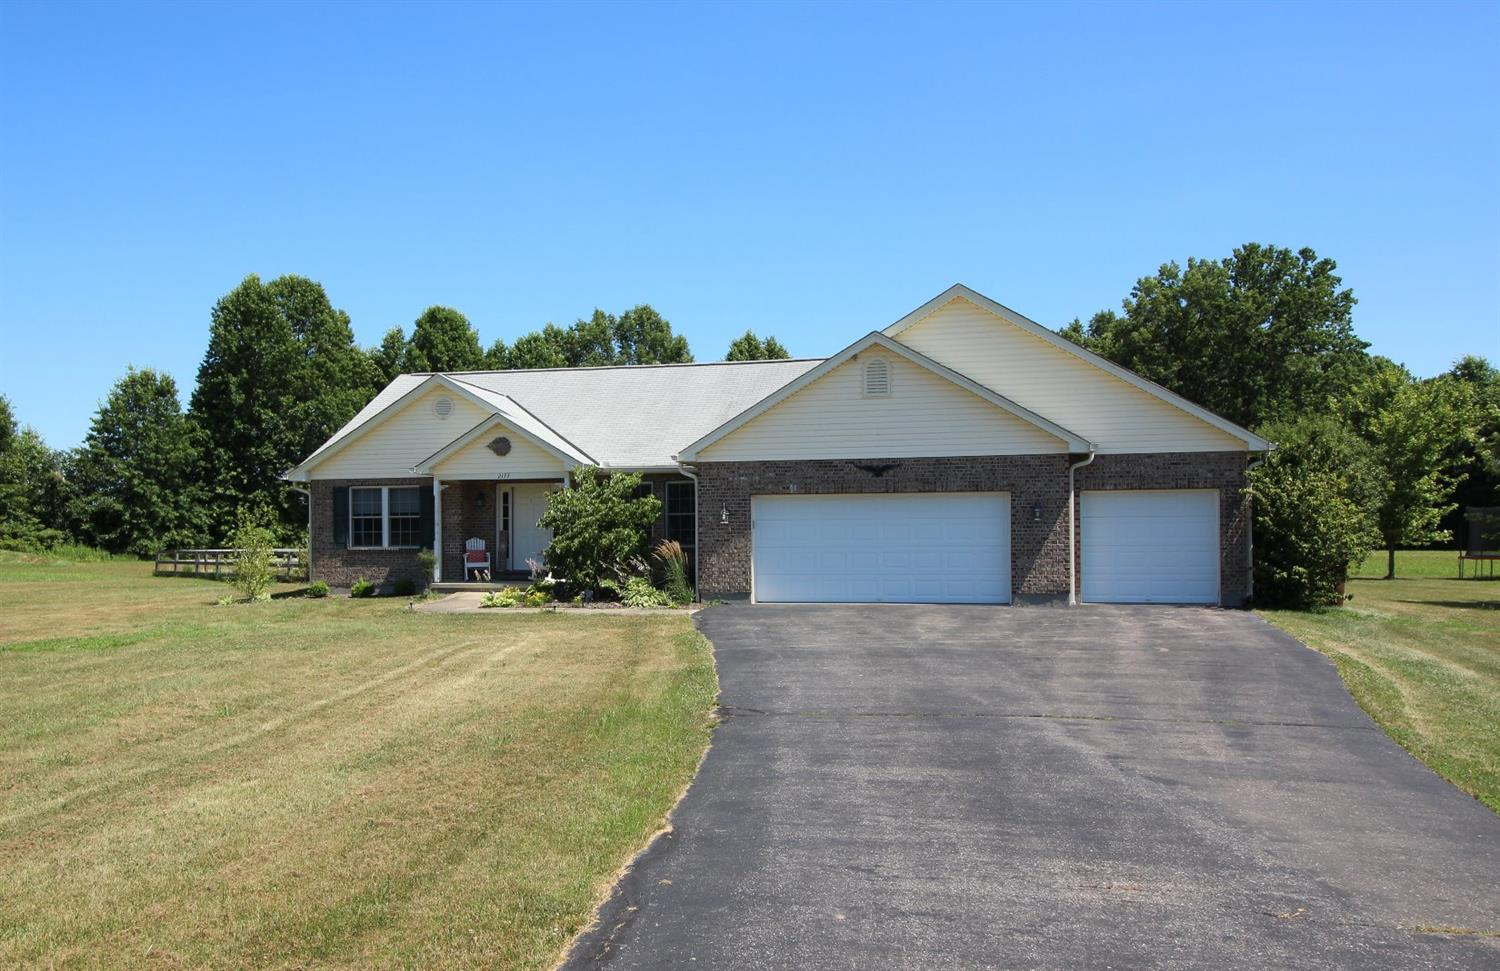 2173 Clermont Meadows Ln Monroe Twp., OH